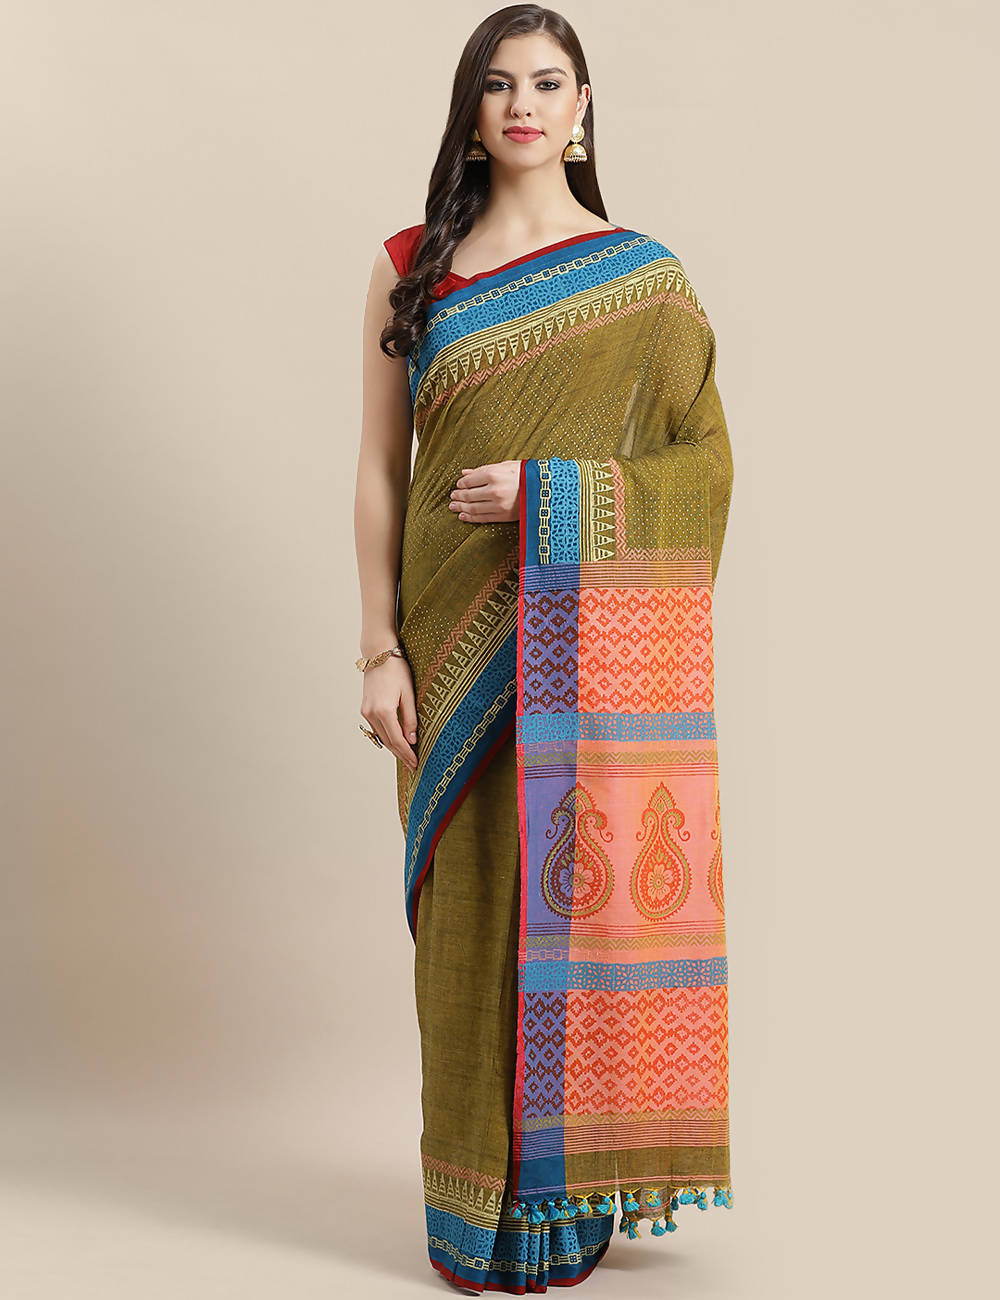 Olive peach handwoven hand block printed cotton saree